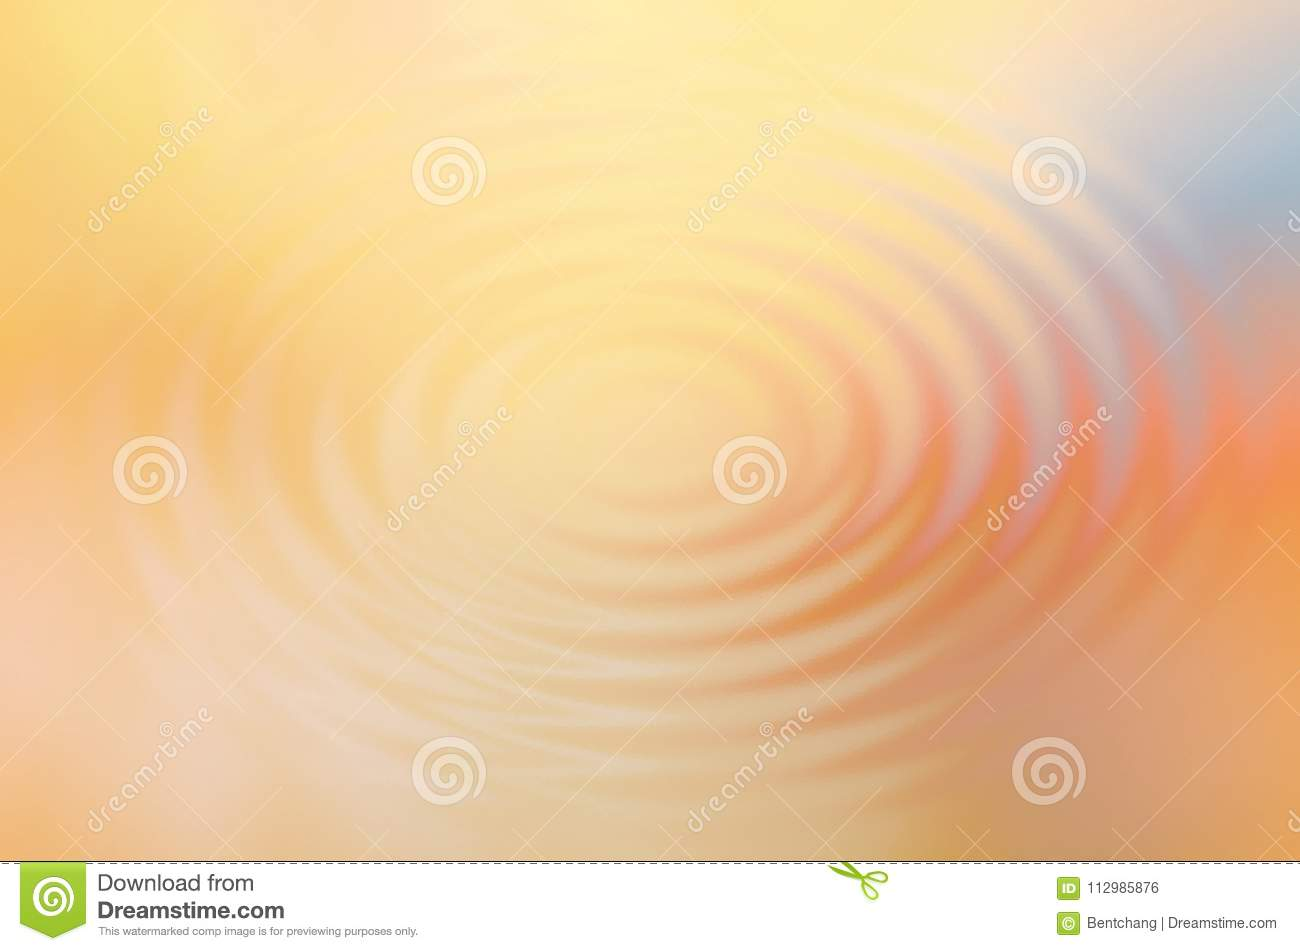 Abstract background with motion. Blur, design, beauty, brown & yellow.